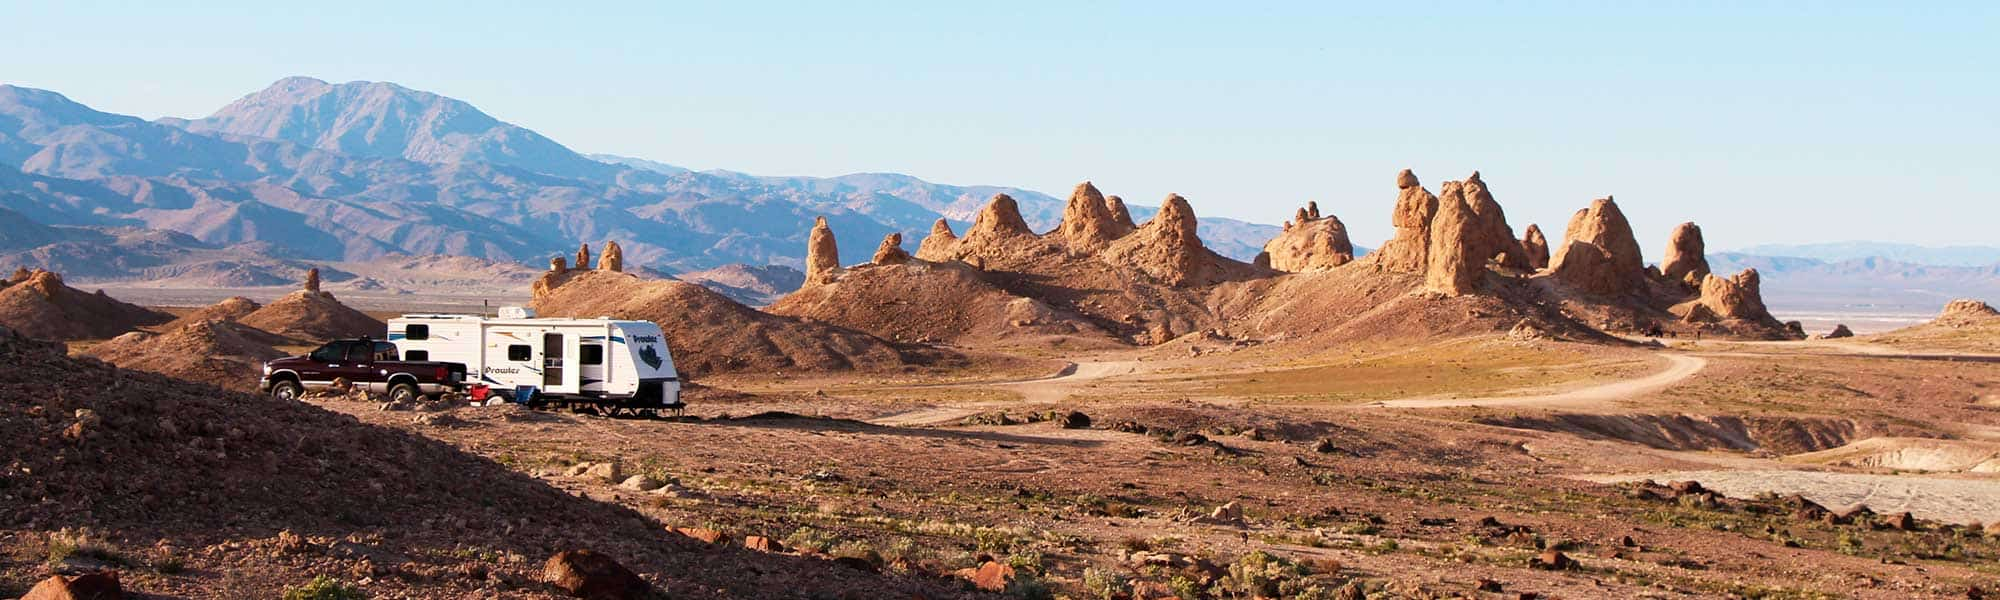 trona-pinnacles-blm-camping-review-and-info